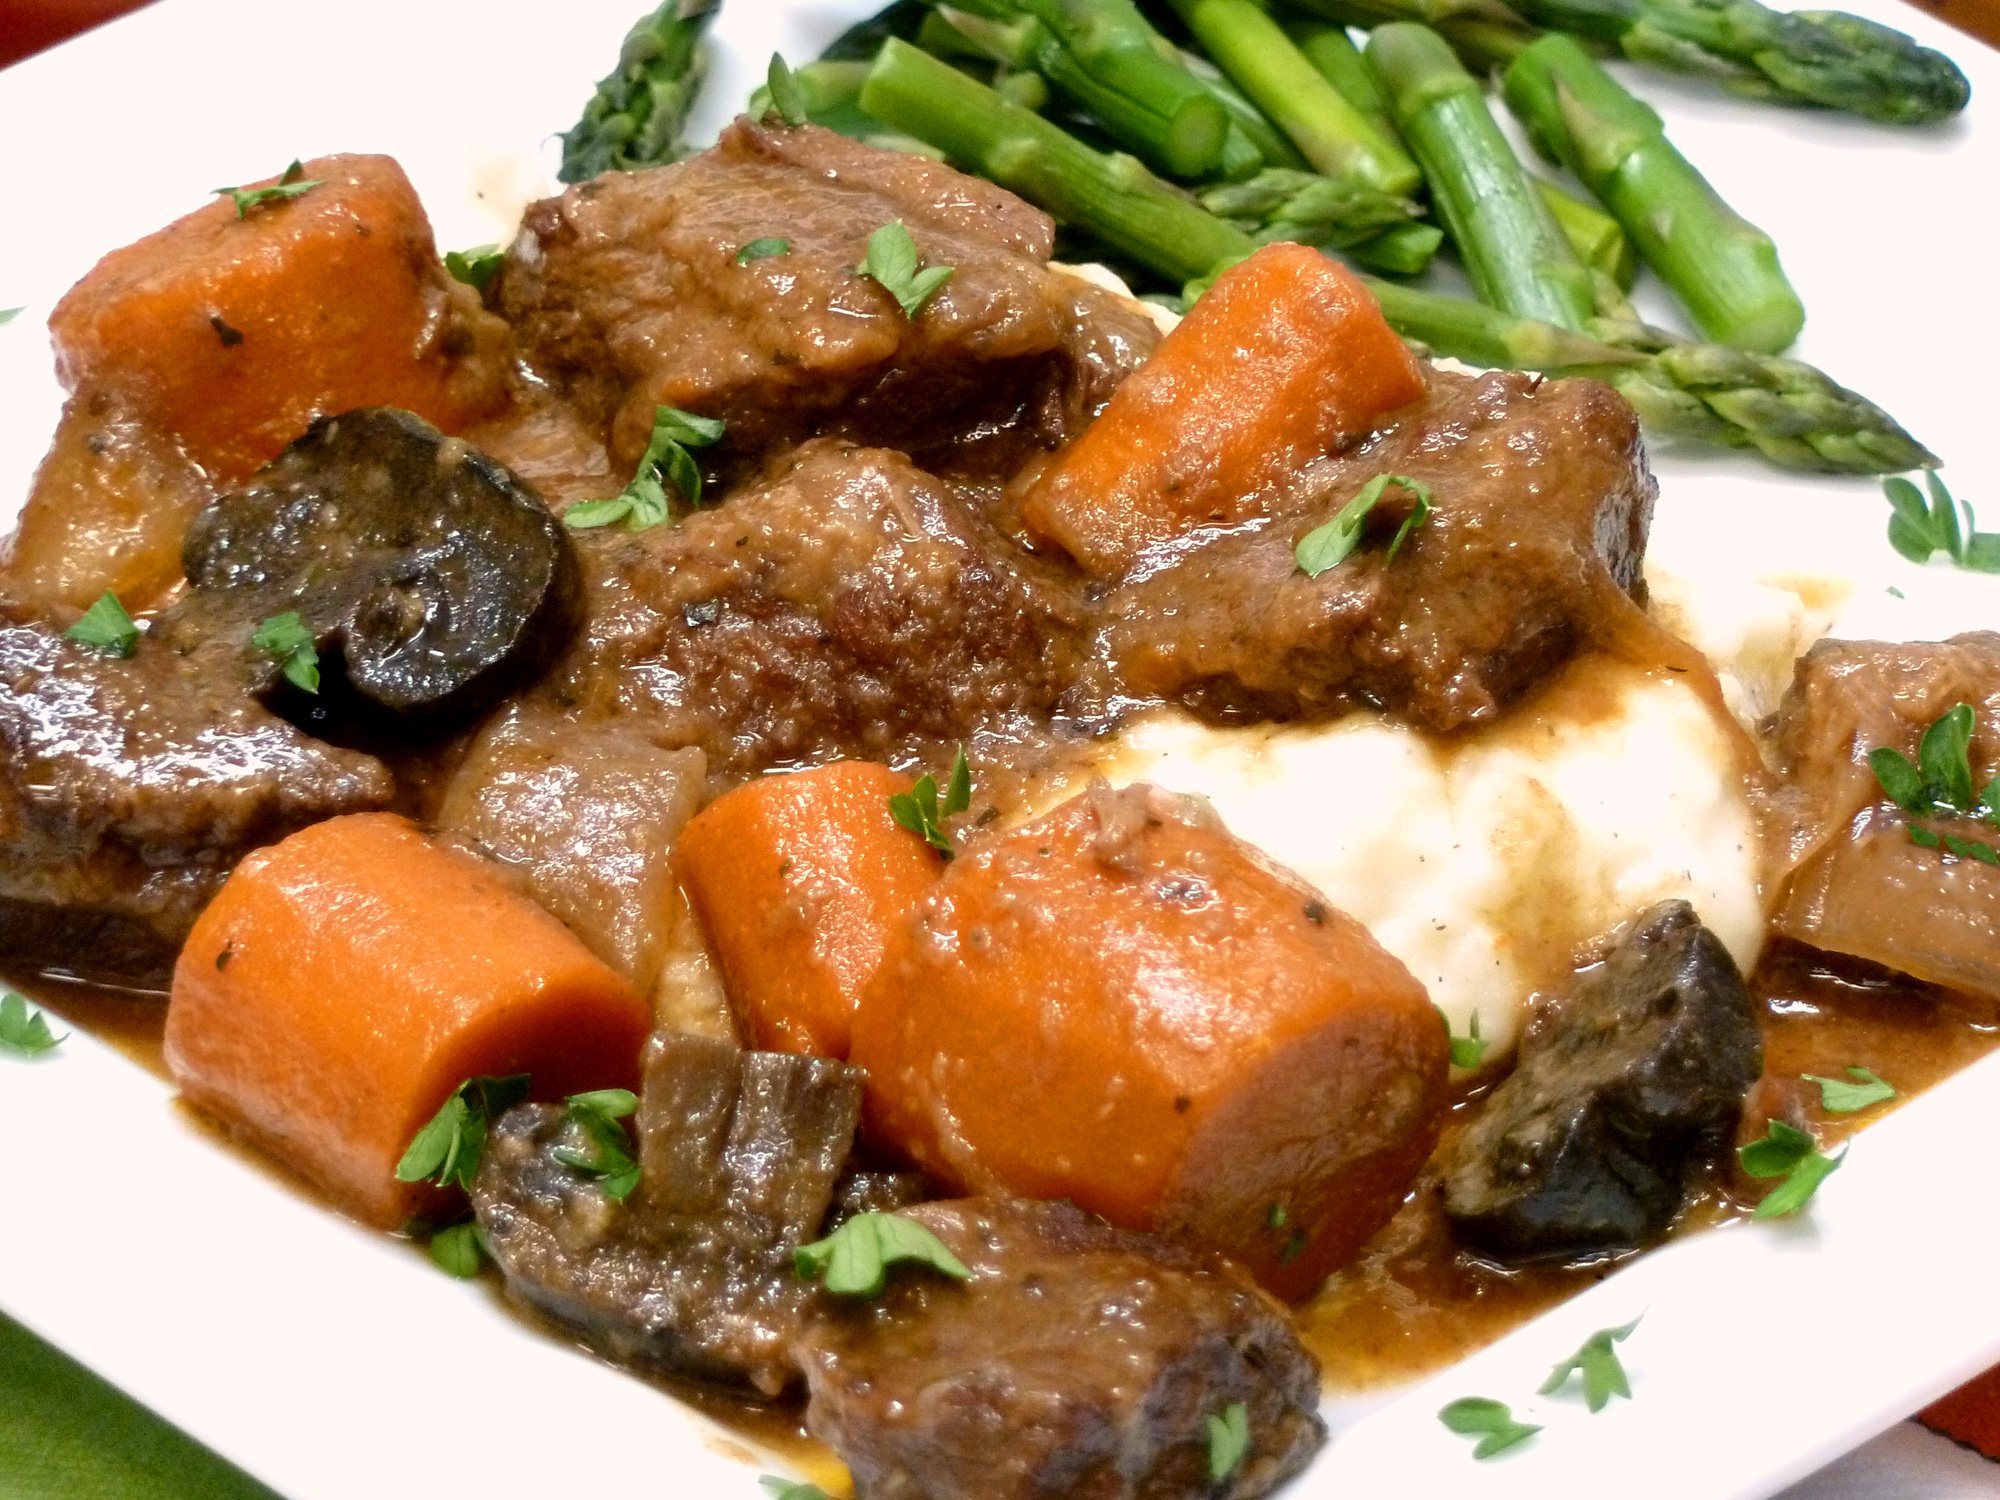 Here is a close-up of the Guinness beef stew. Can't you almost taste it?